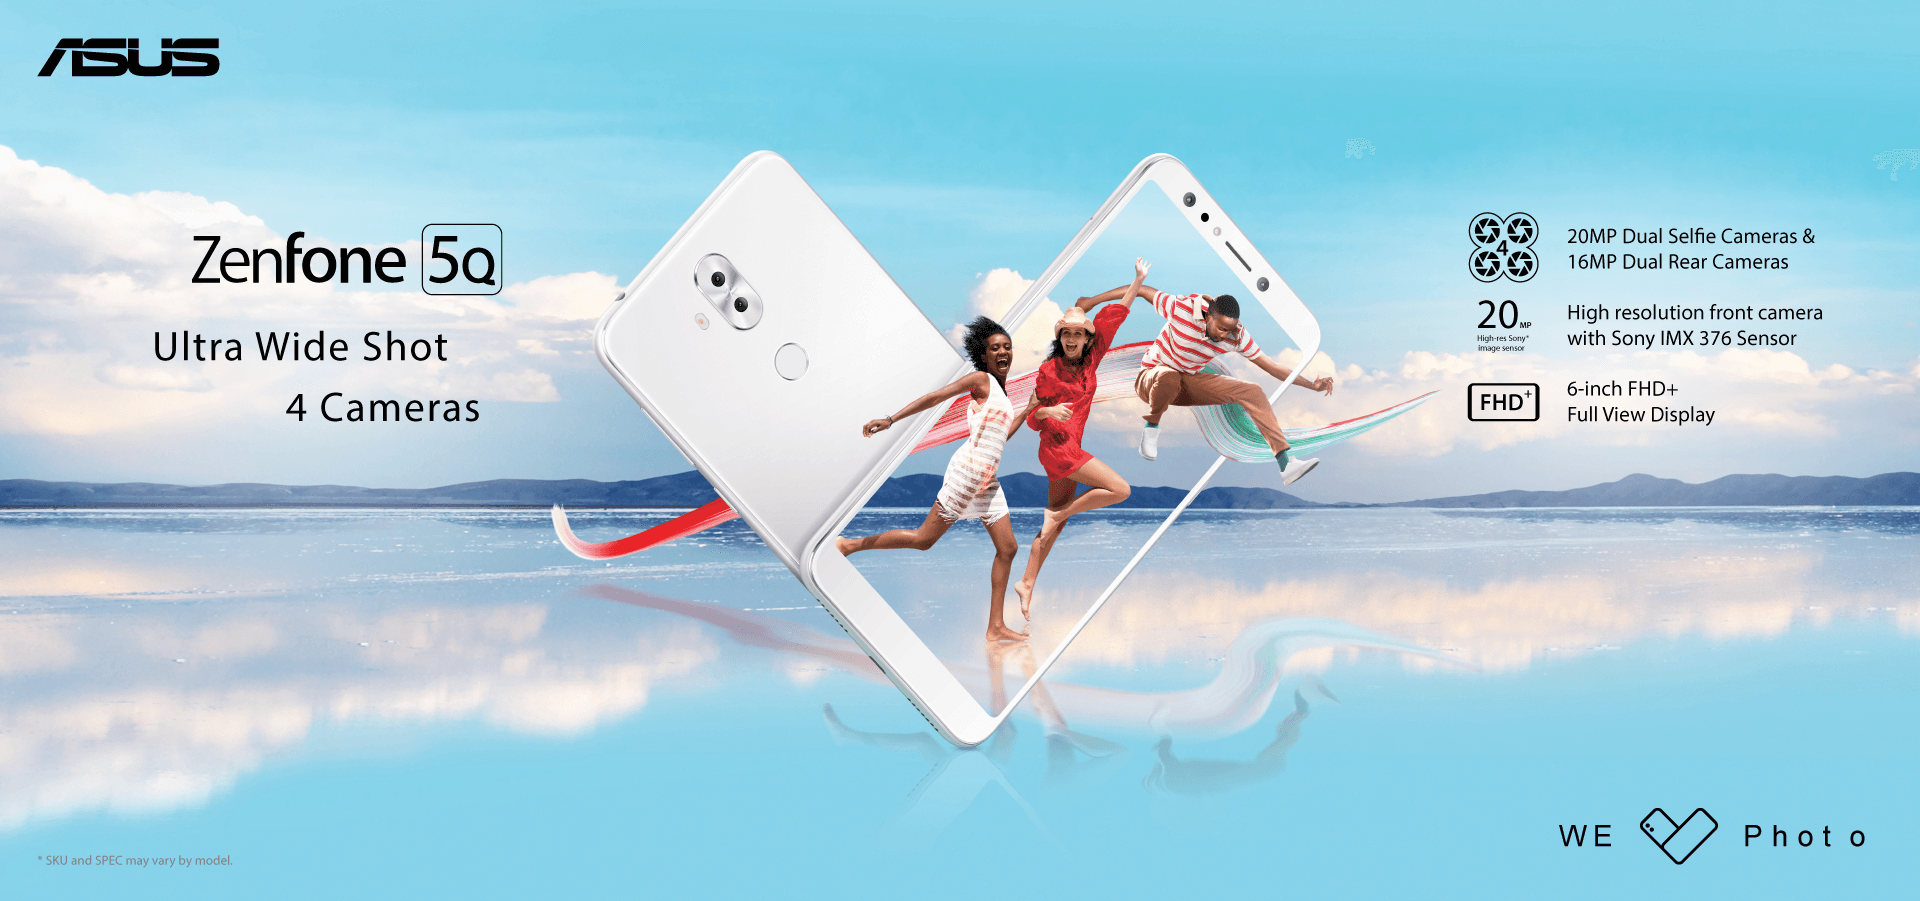 main kv - The Top 5 Features of the ASUS Zenfone 5Q